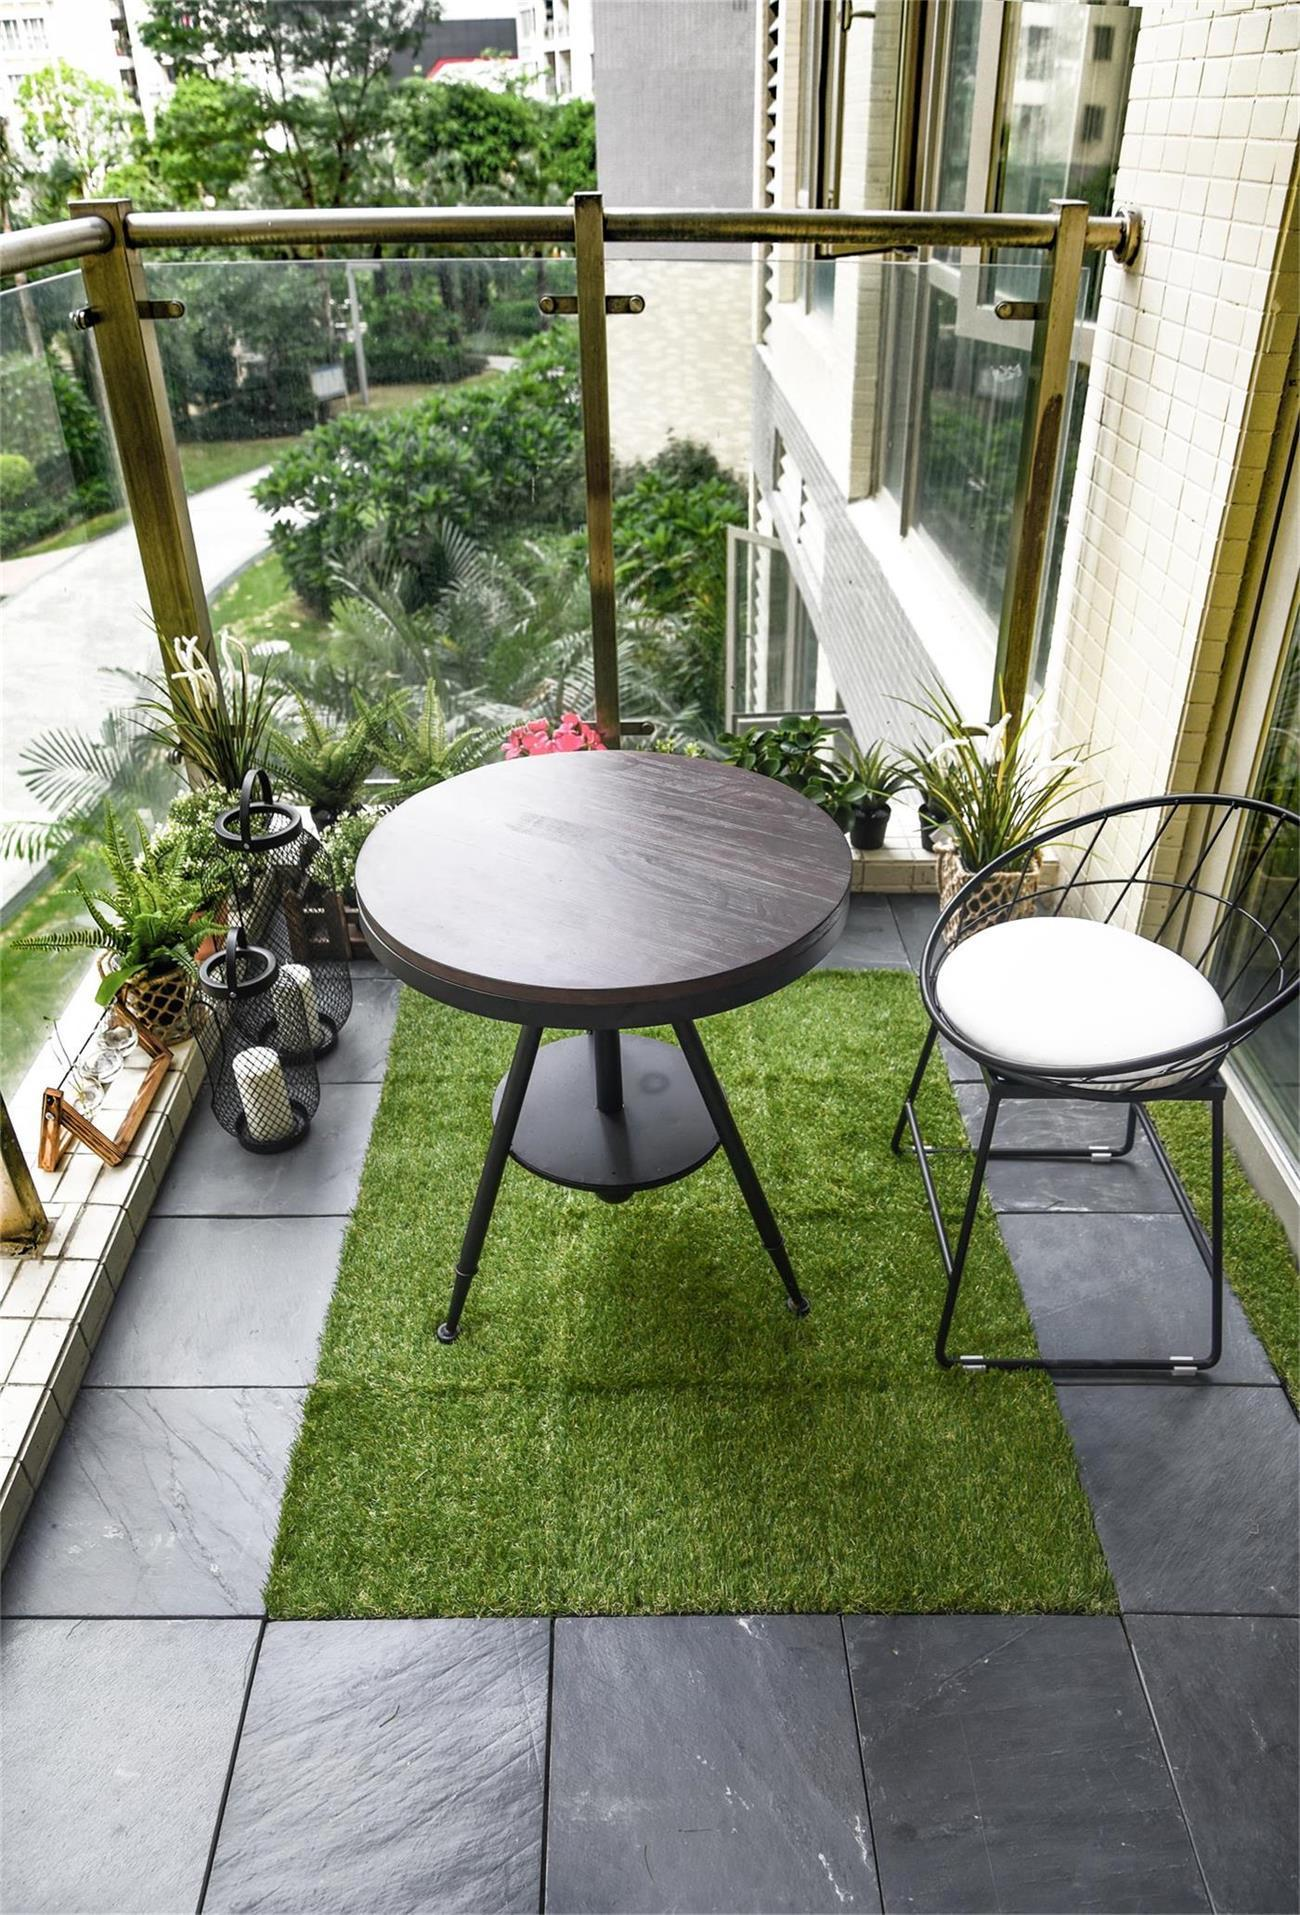 Renew your old balcony in 20 mins